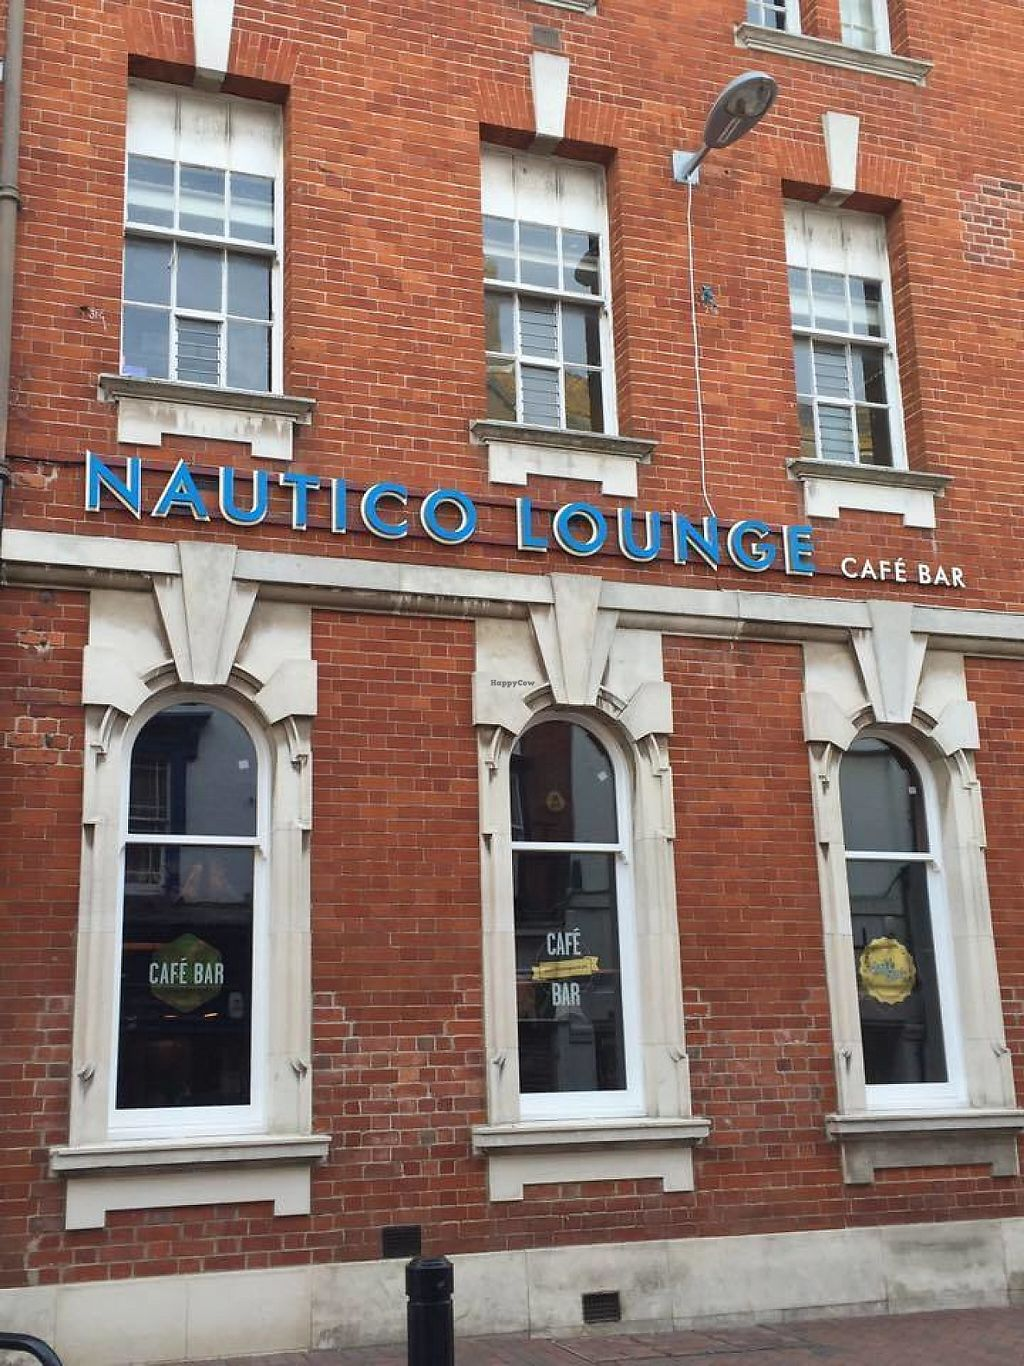 """Photo of Nautico Lounge  by <a href=""""/members/profile/community5"""">community5</a> <br/>Nautico Lounge <br/> May 22, 2017  - <a href='/contact/abuse/image/77121/261424'>Report</a>"""